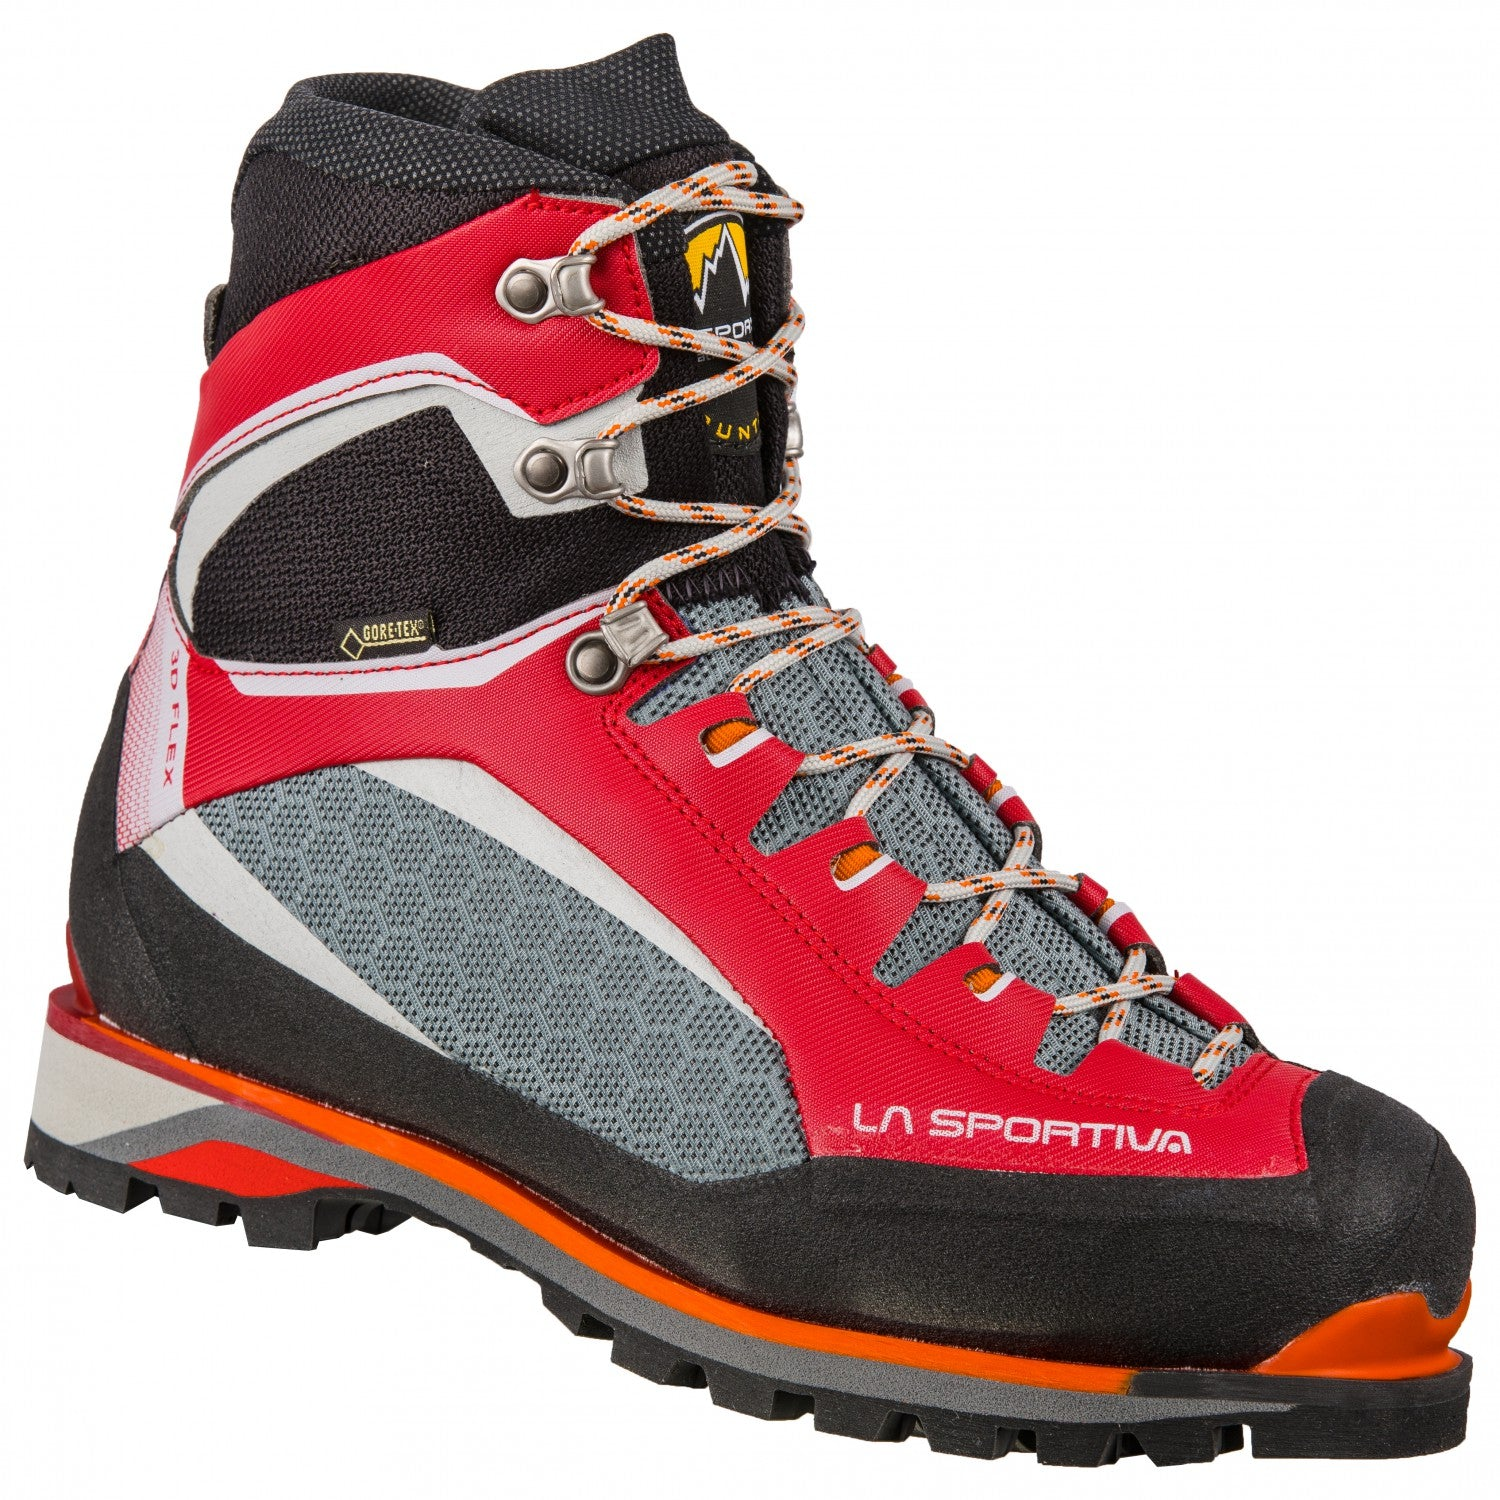 La Sportiva Trango Tower Extreme GTX Womens mountaineering boot, in Red, black and grey colours